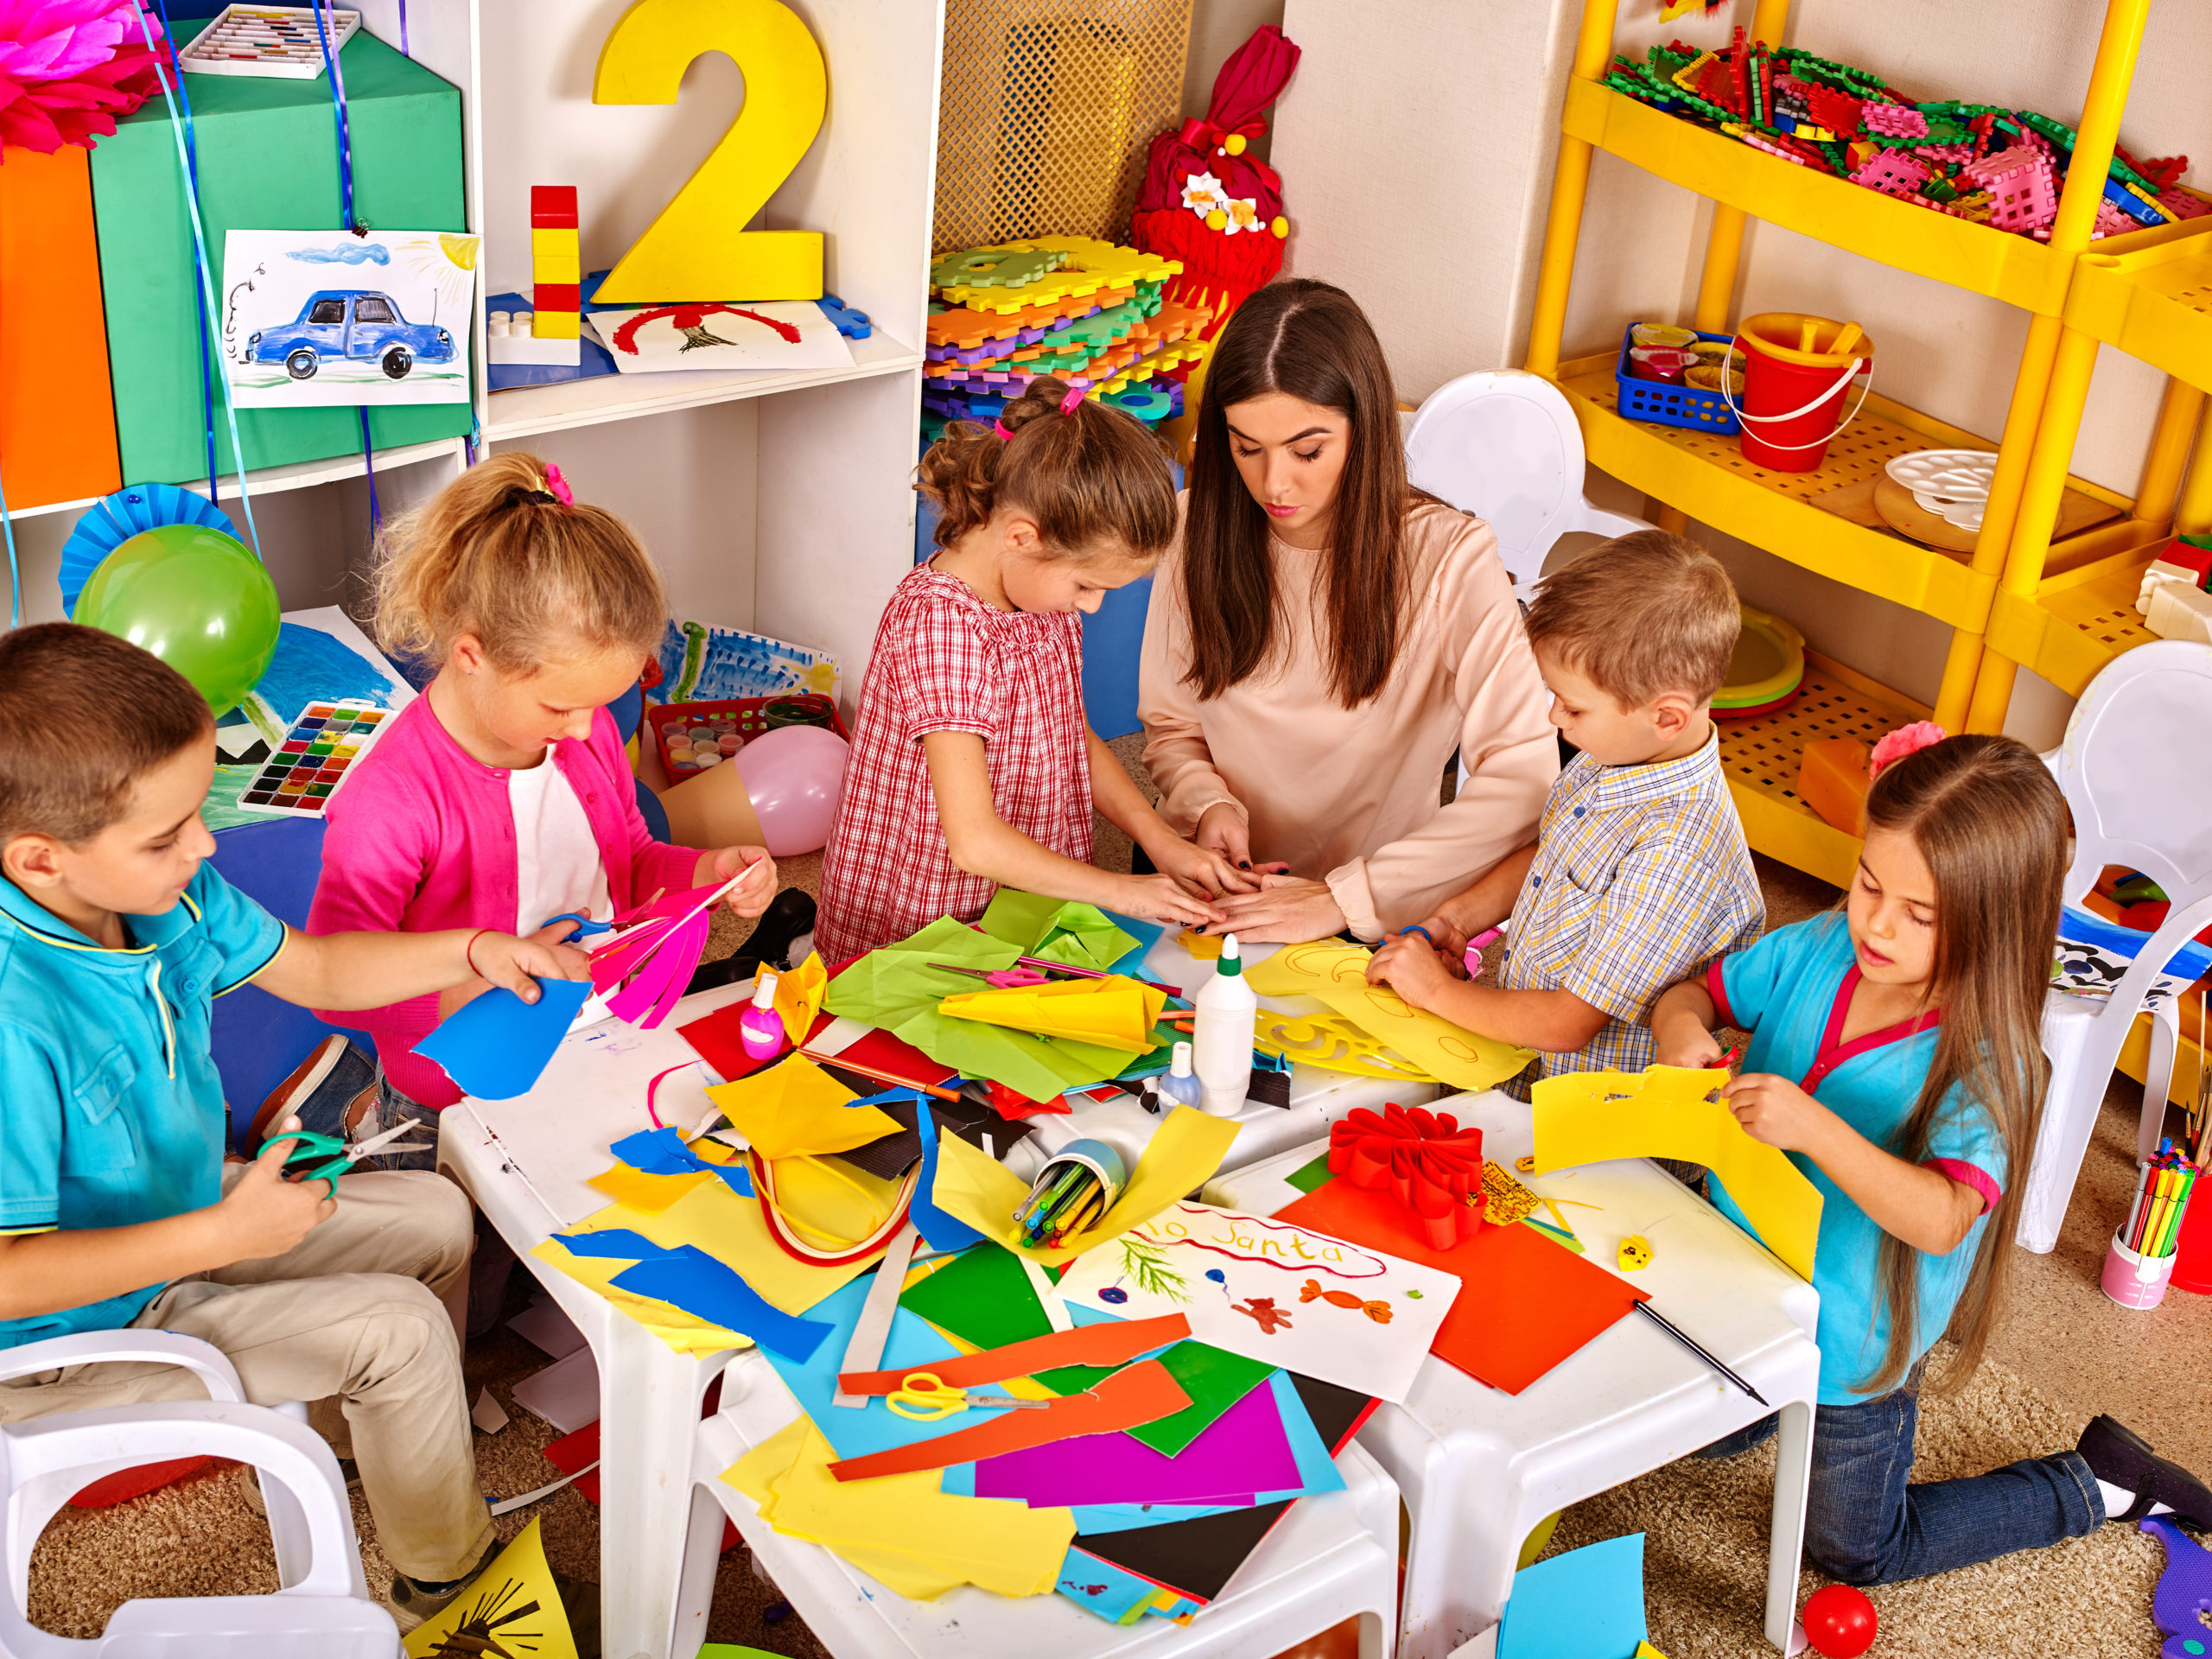 Group,Of,Children,With,Teacher,Woman,Learn,Painting,On,Paper